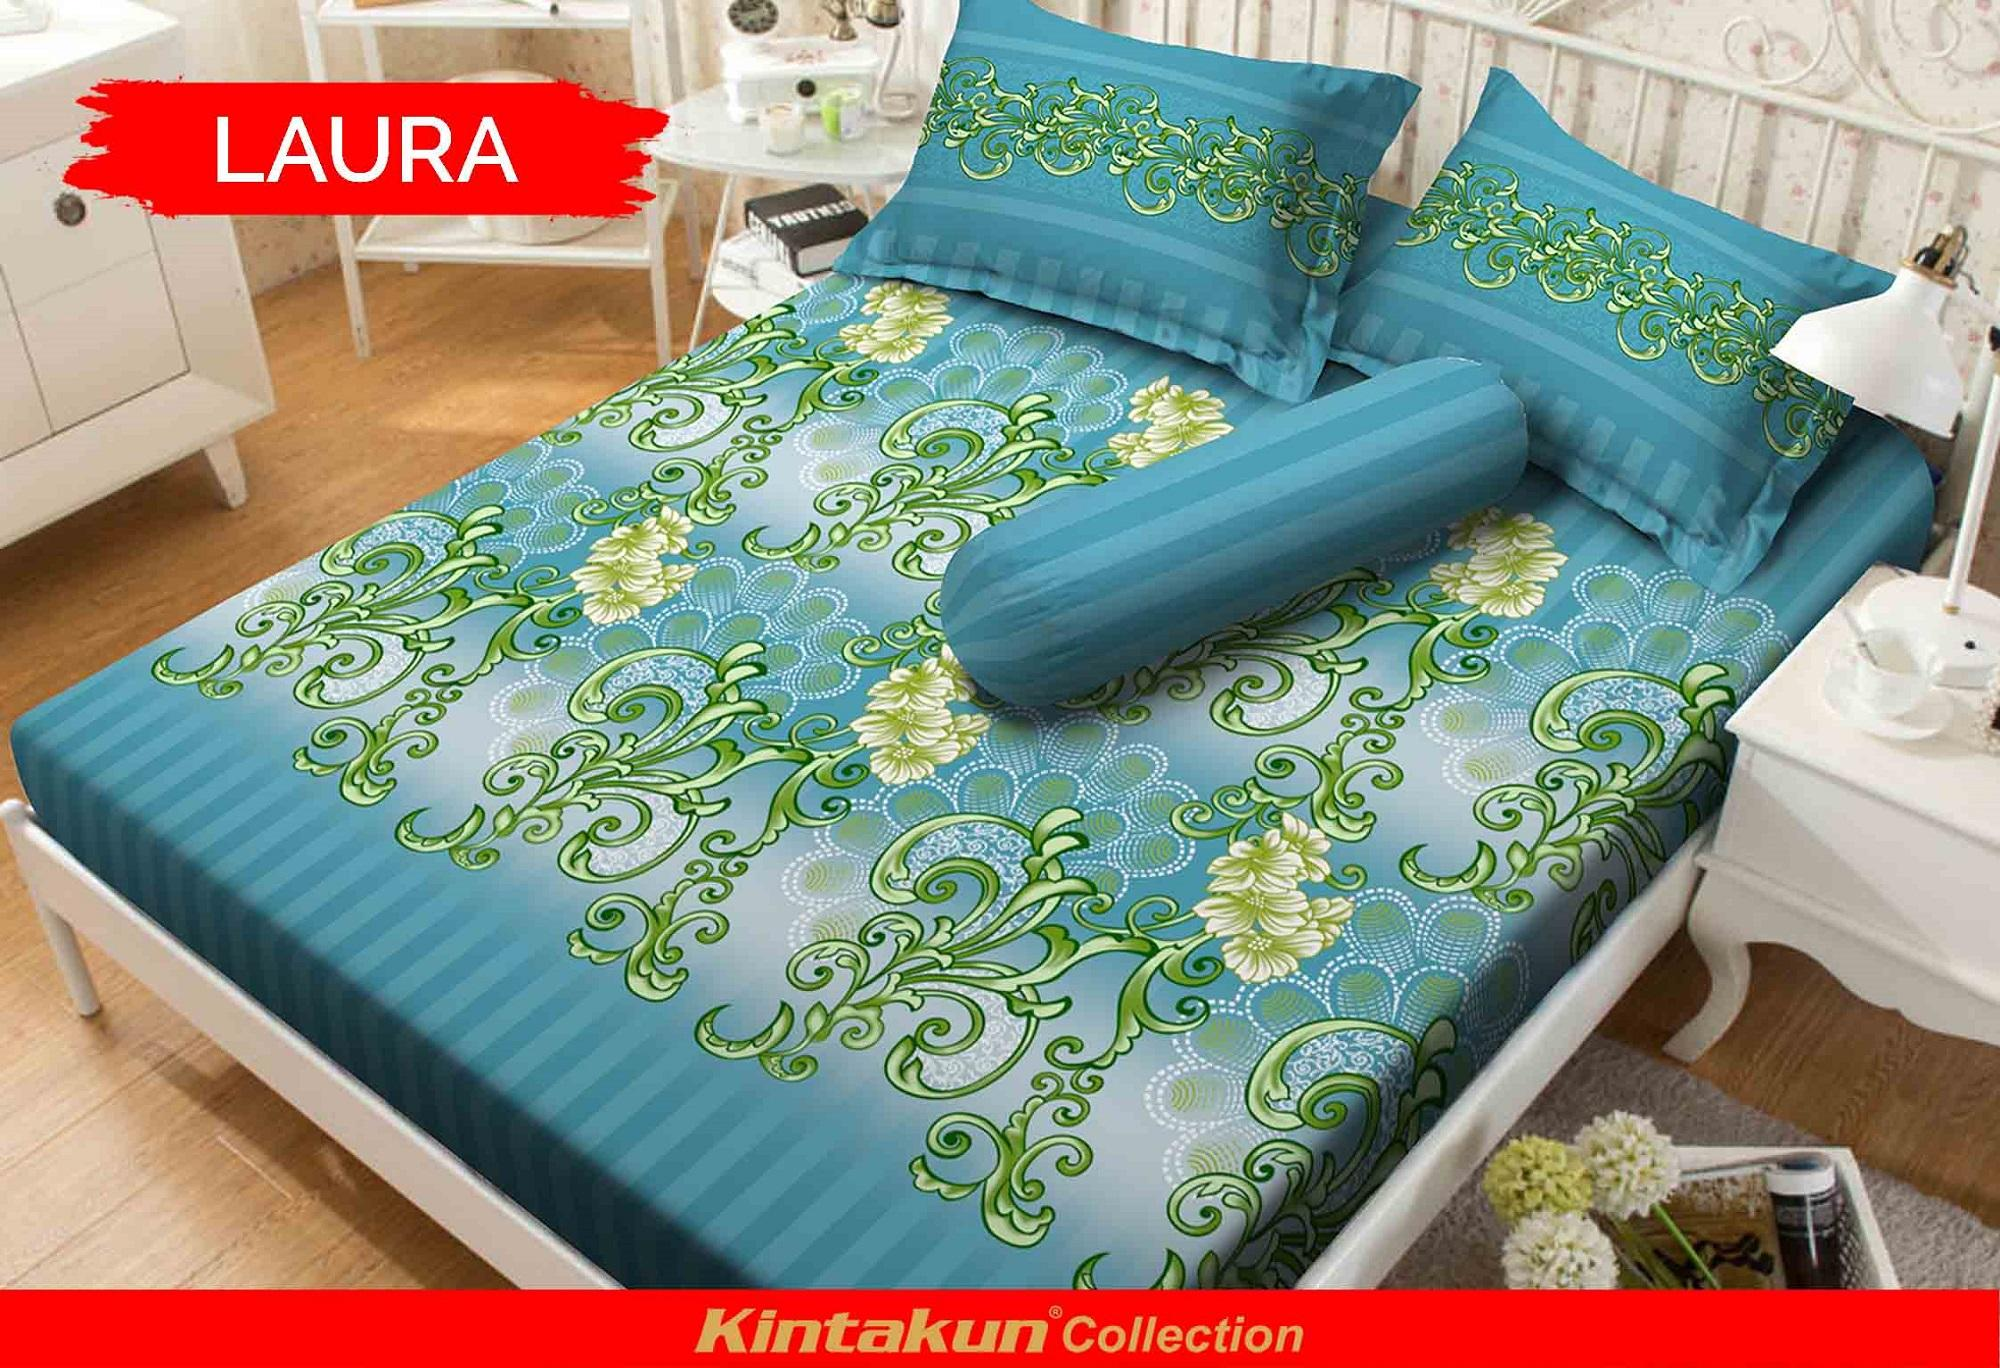 Buy Sell Cheapest Guangquanstrade 3x King Best Quality Product Kintakun Dluxe Sprei 180 X 200 B2 Barbie Pop Star 180x200cm Laura